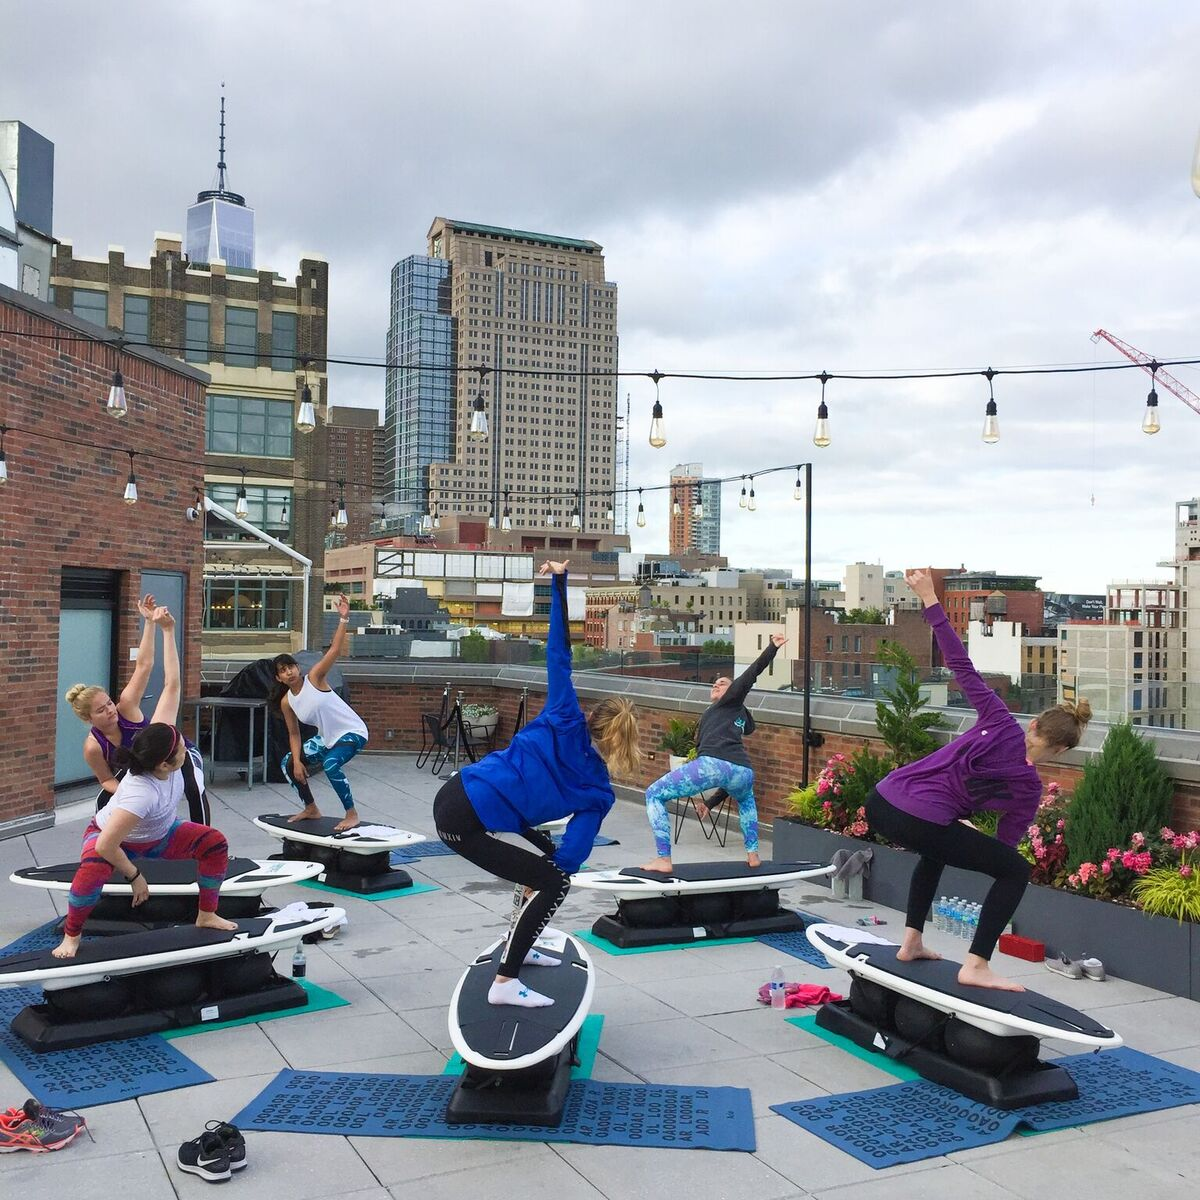 SURFSET New York City pop up surfing lessons